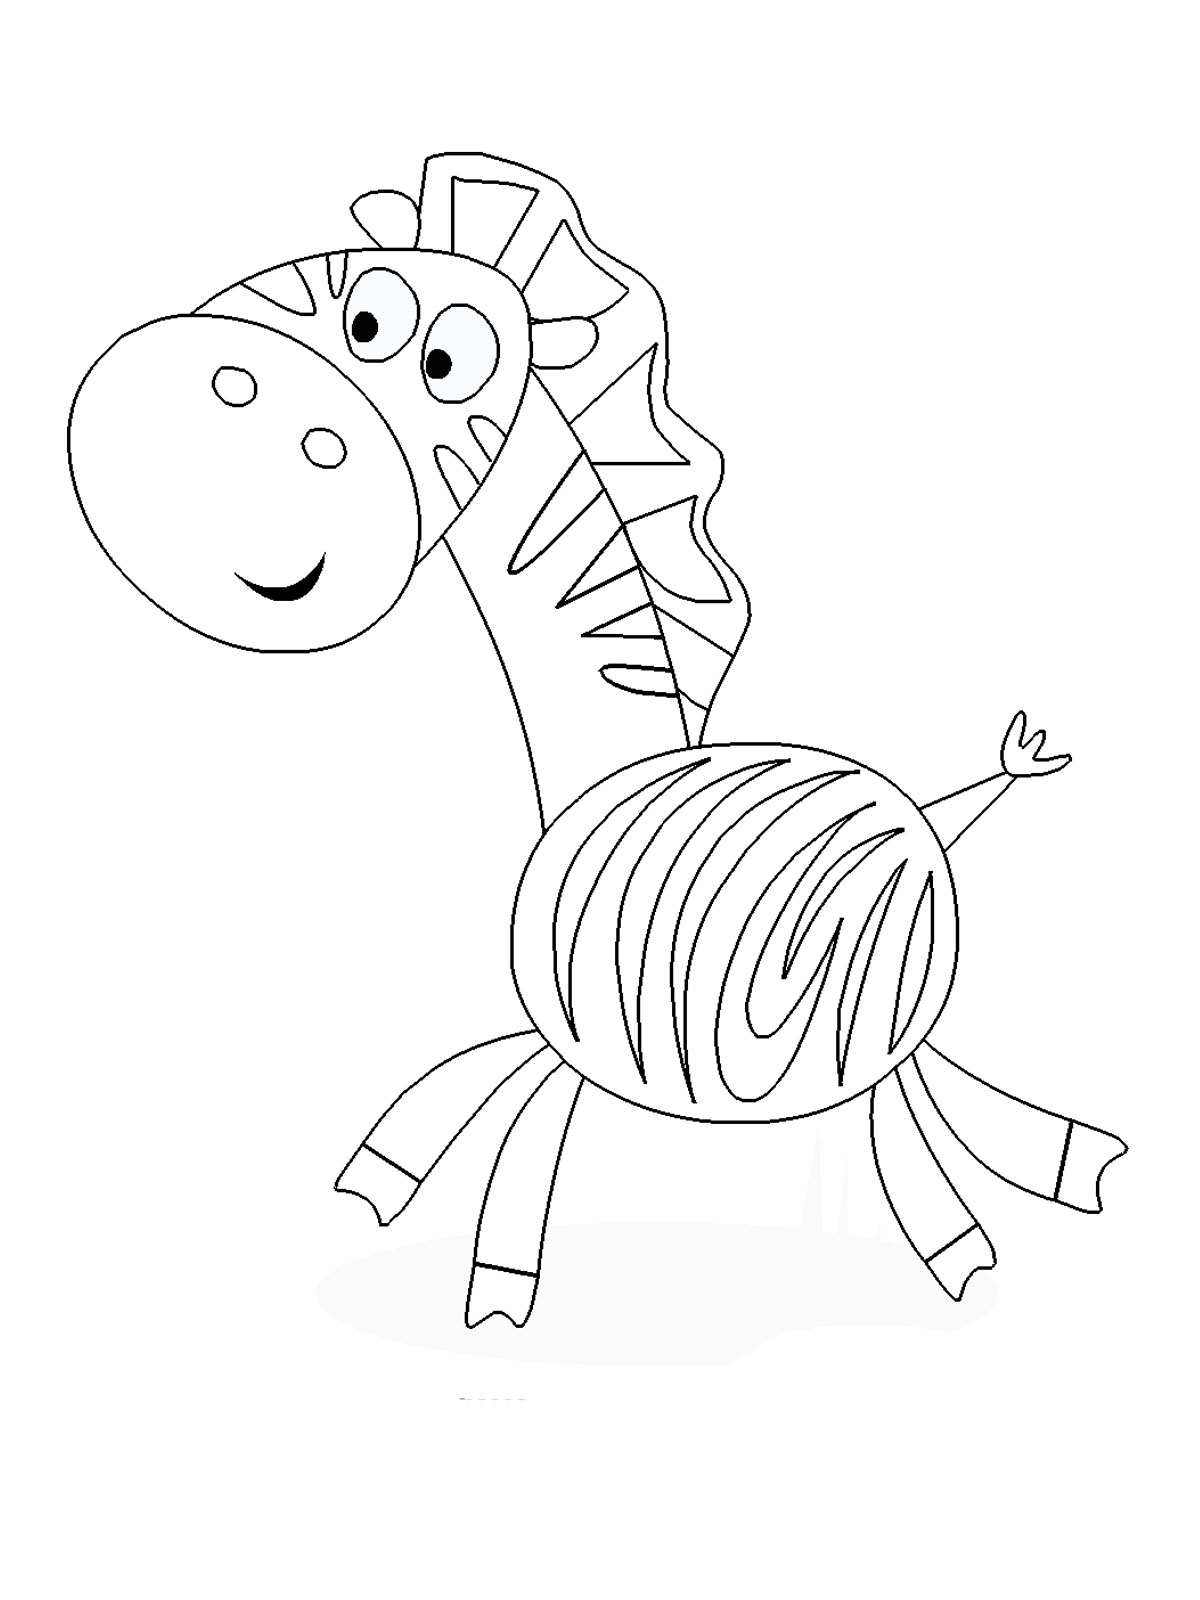 Printable coloring pages for kids   Coloring Pages For Kids   printable coloring pages for kids.